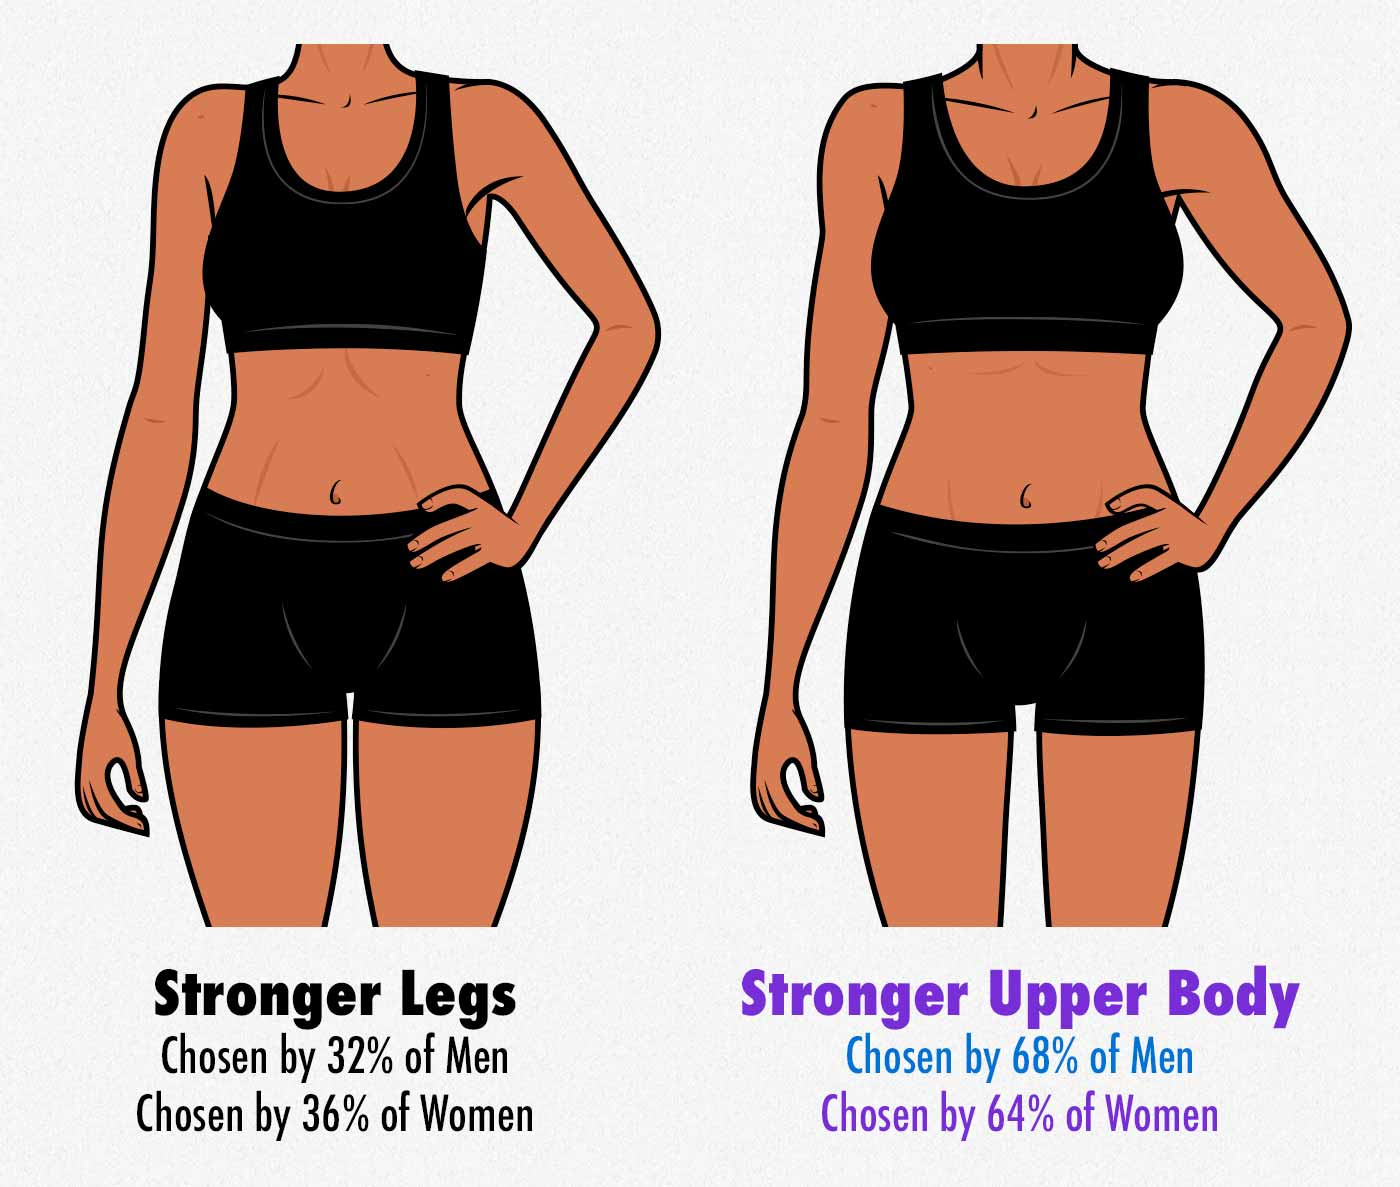 Survey results showing that men prefer women with strong upper bodies.